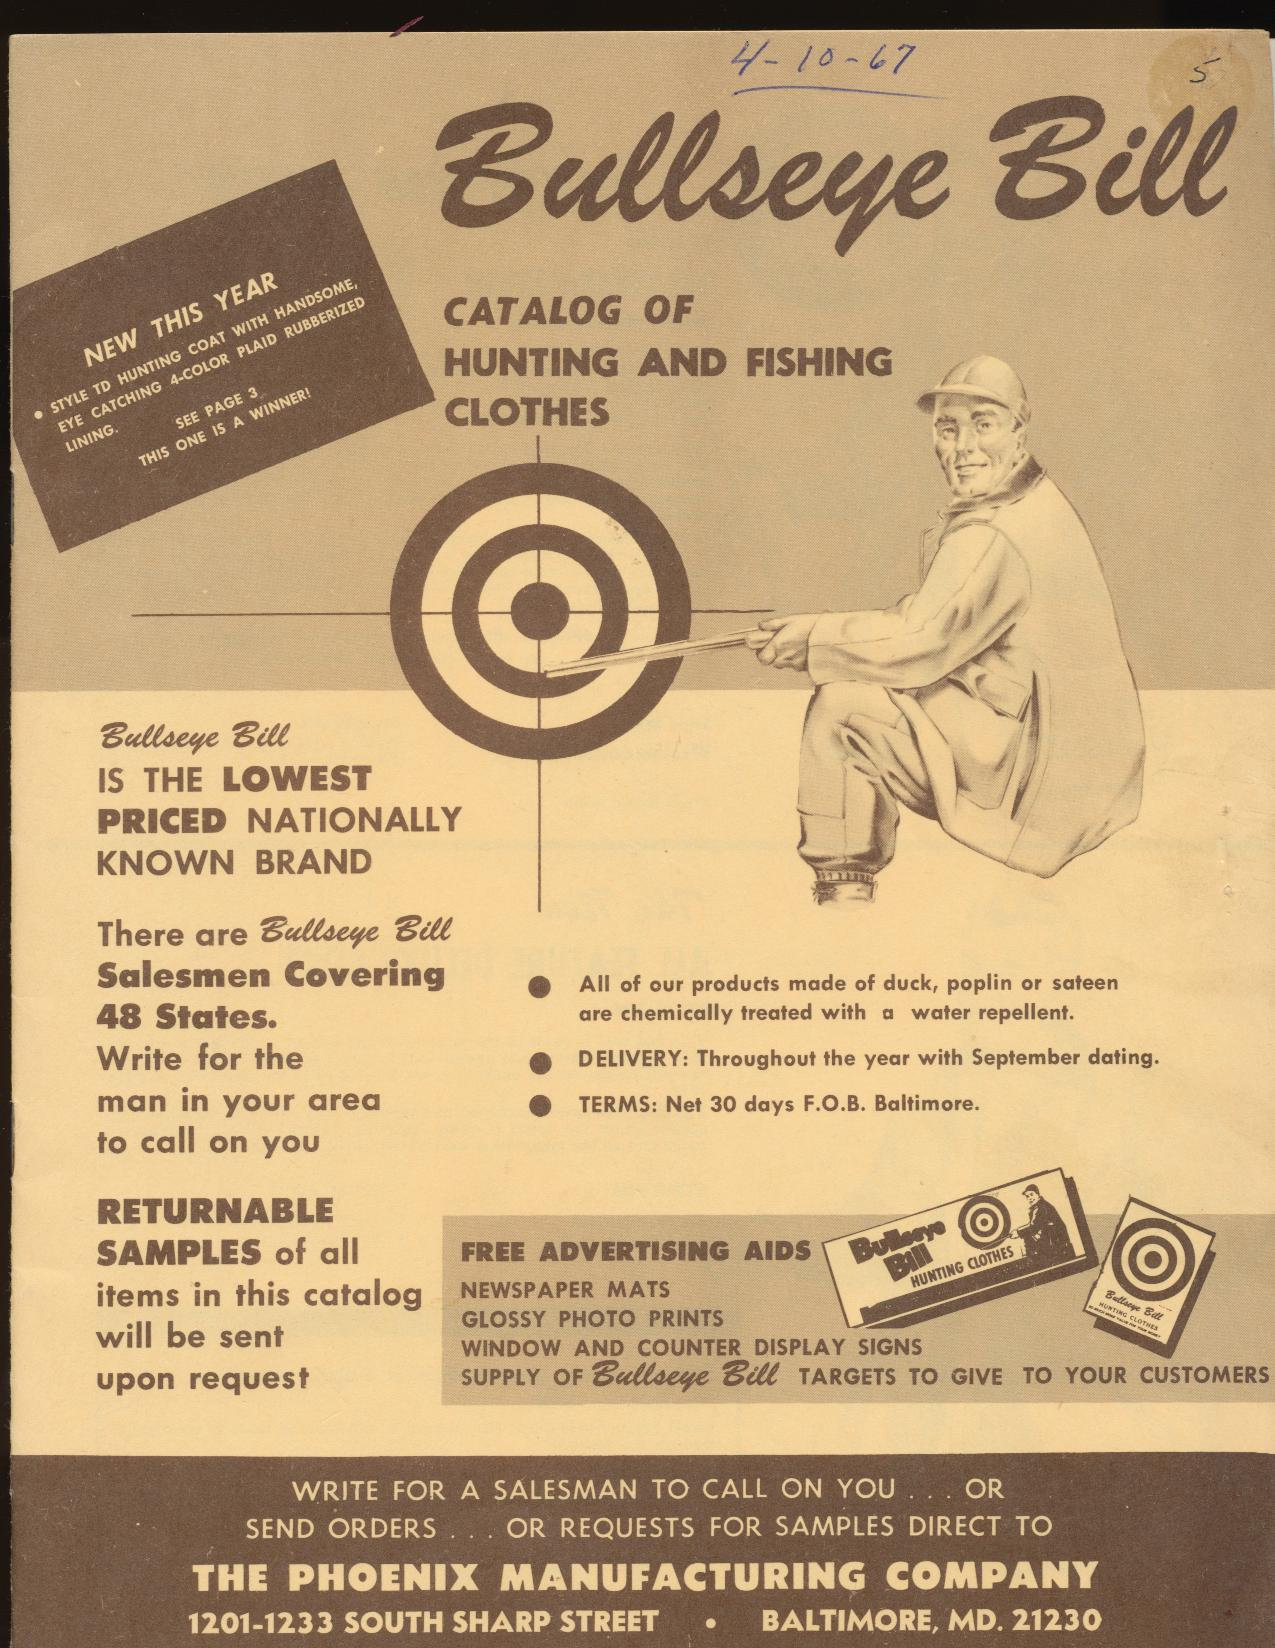 1967 Bullseye Bill Hunting/Fishing Clothes Dealer Trade Catalog